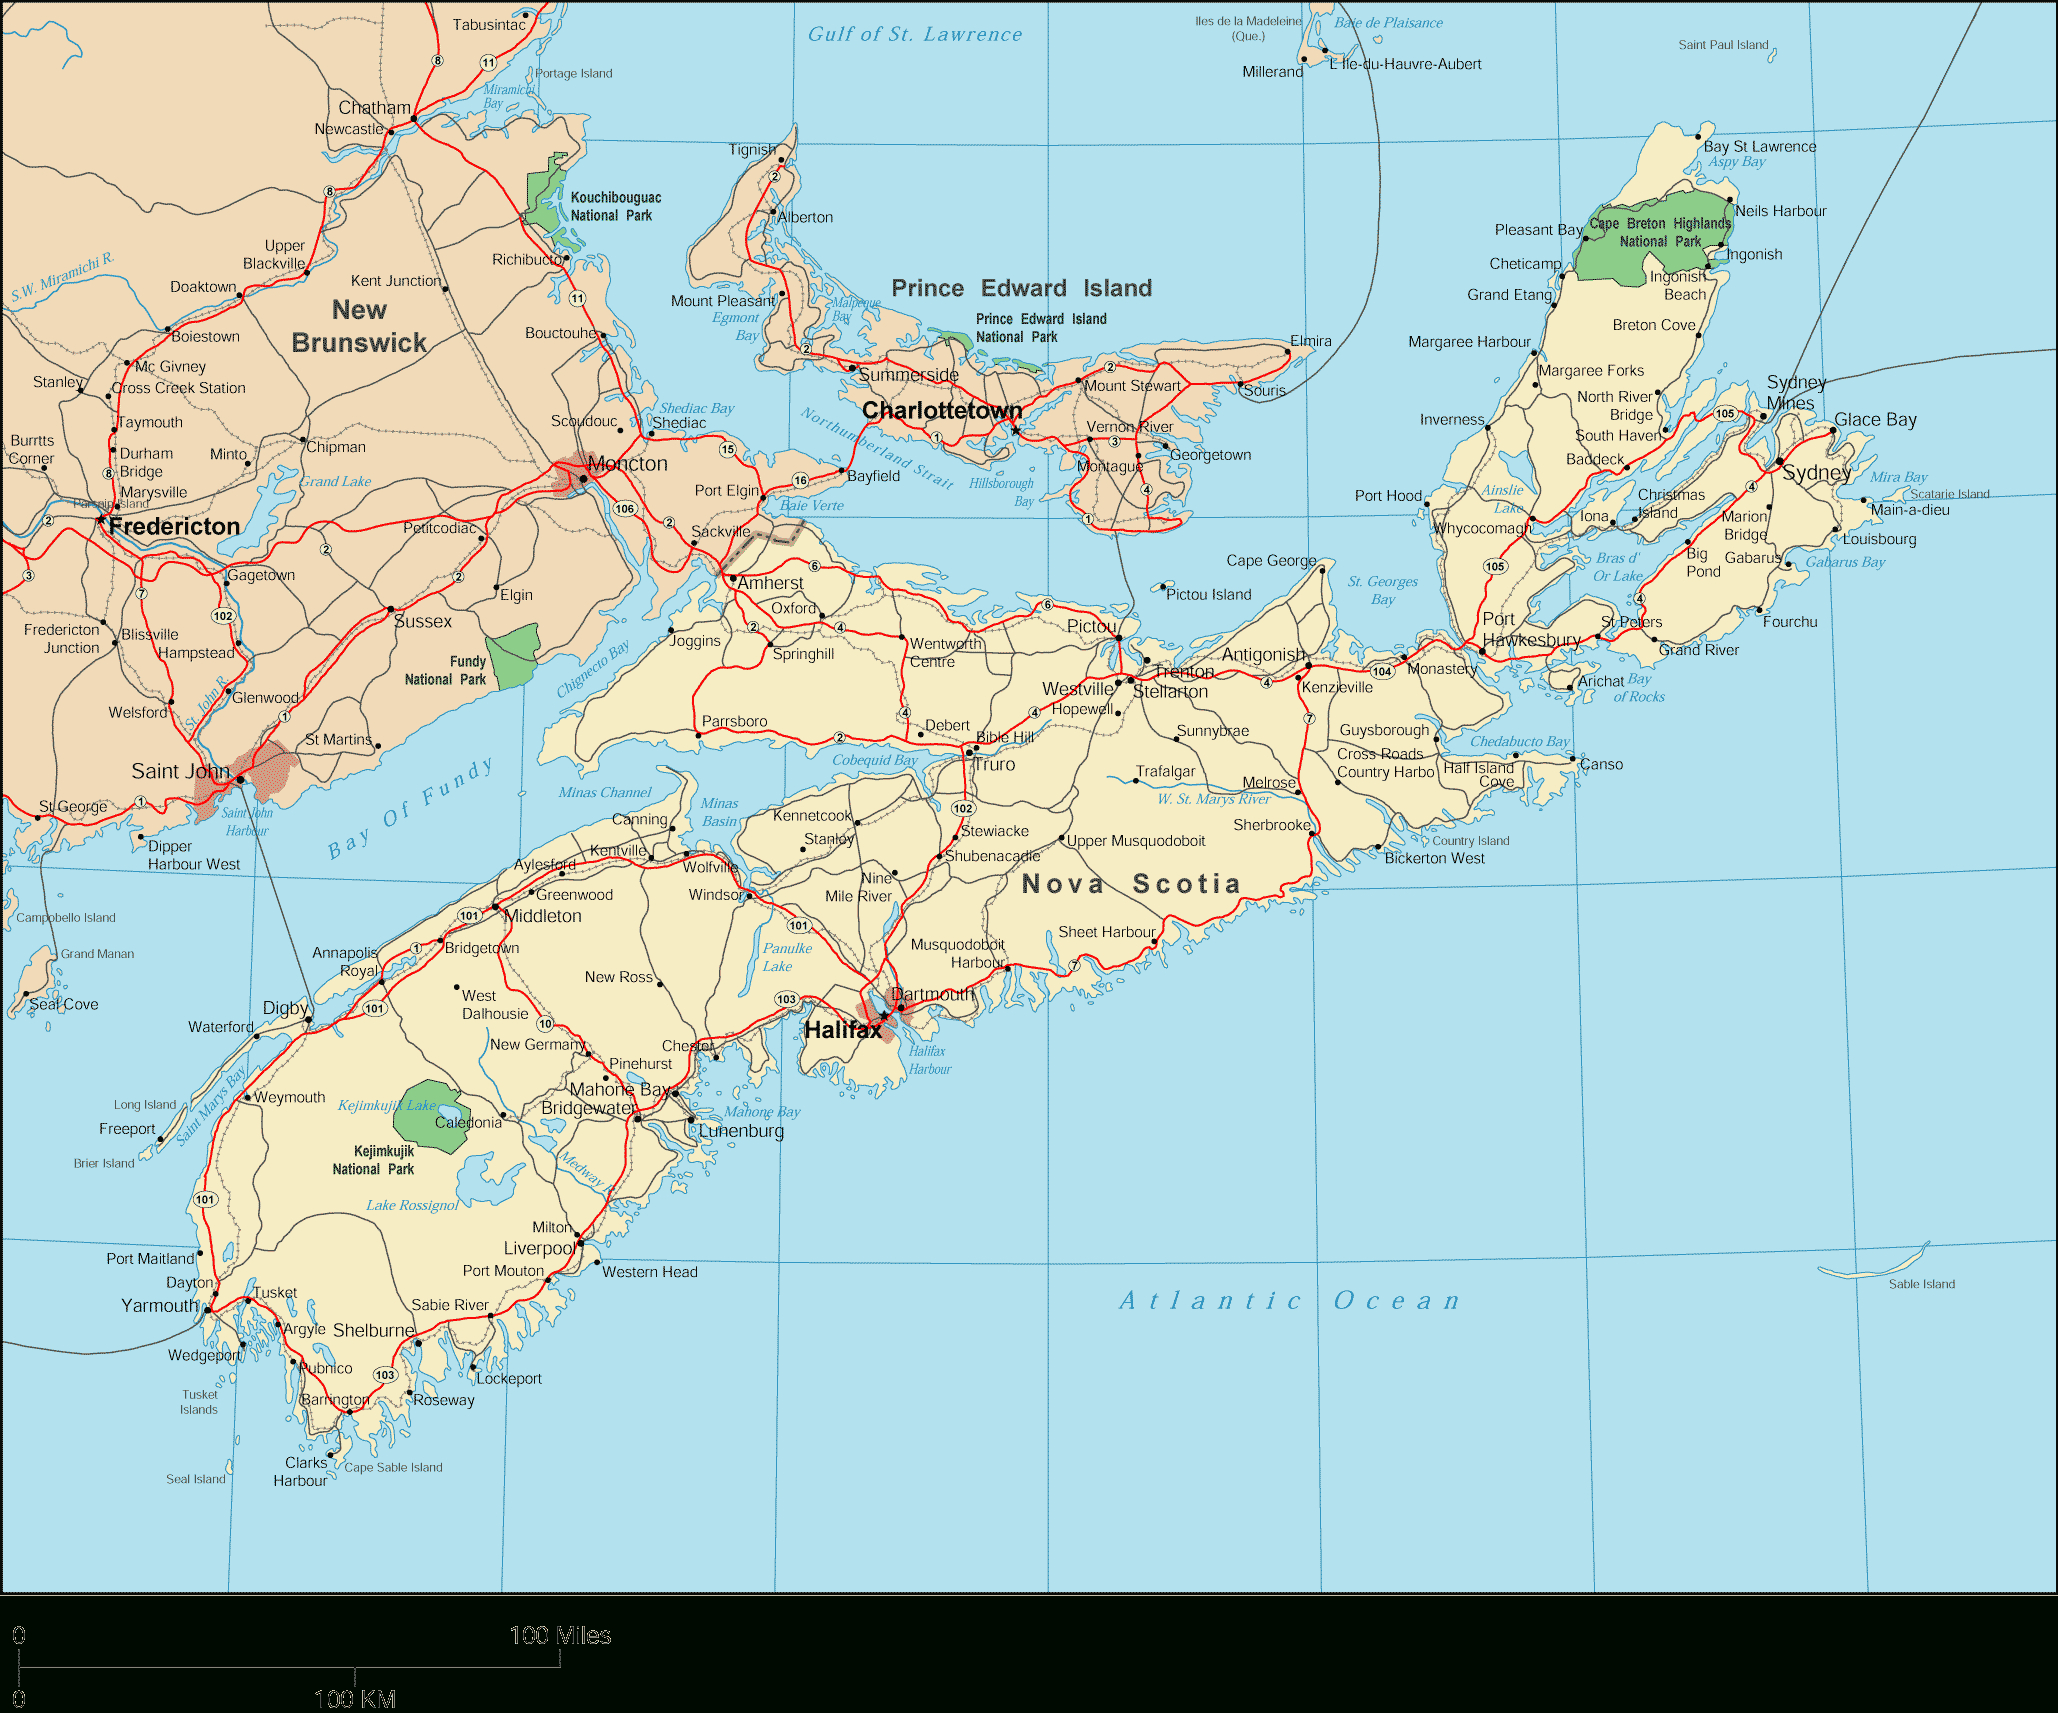 World Maps — World Maps Of Any Kind: Countries, Oceans, Political - Printable Map Of Nova Scotia